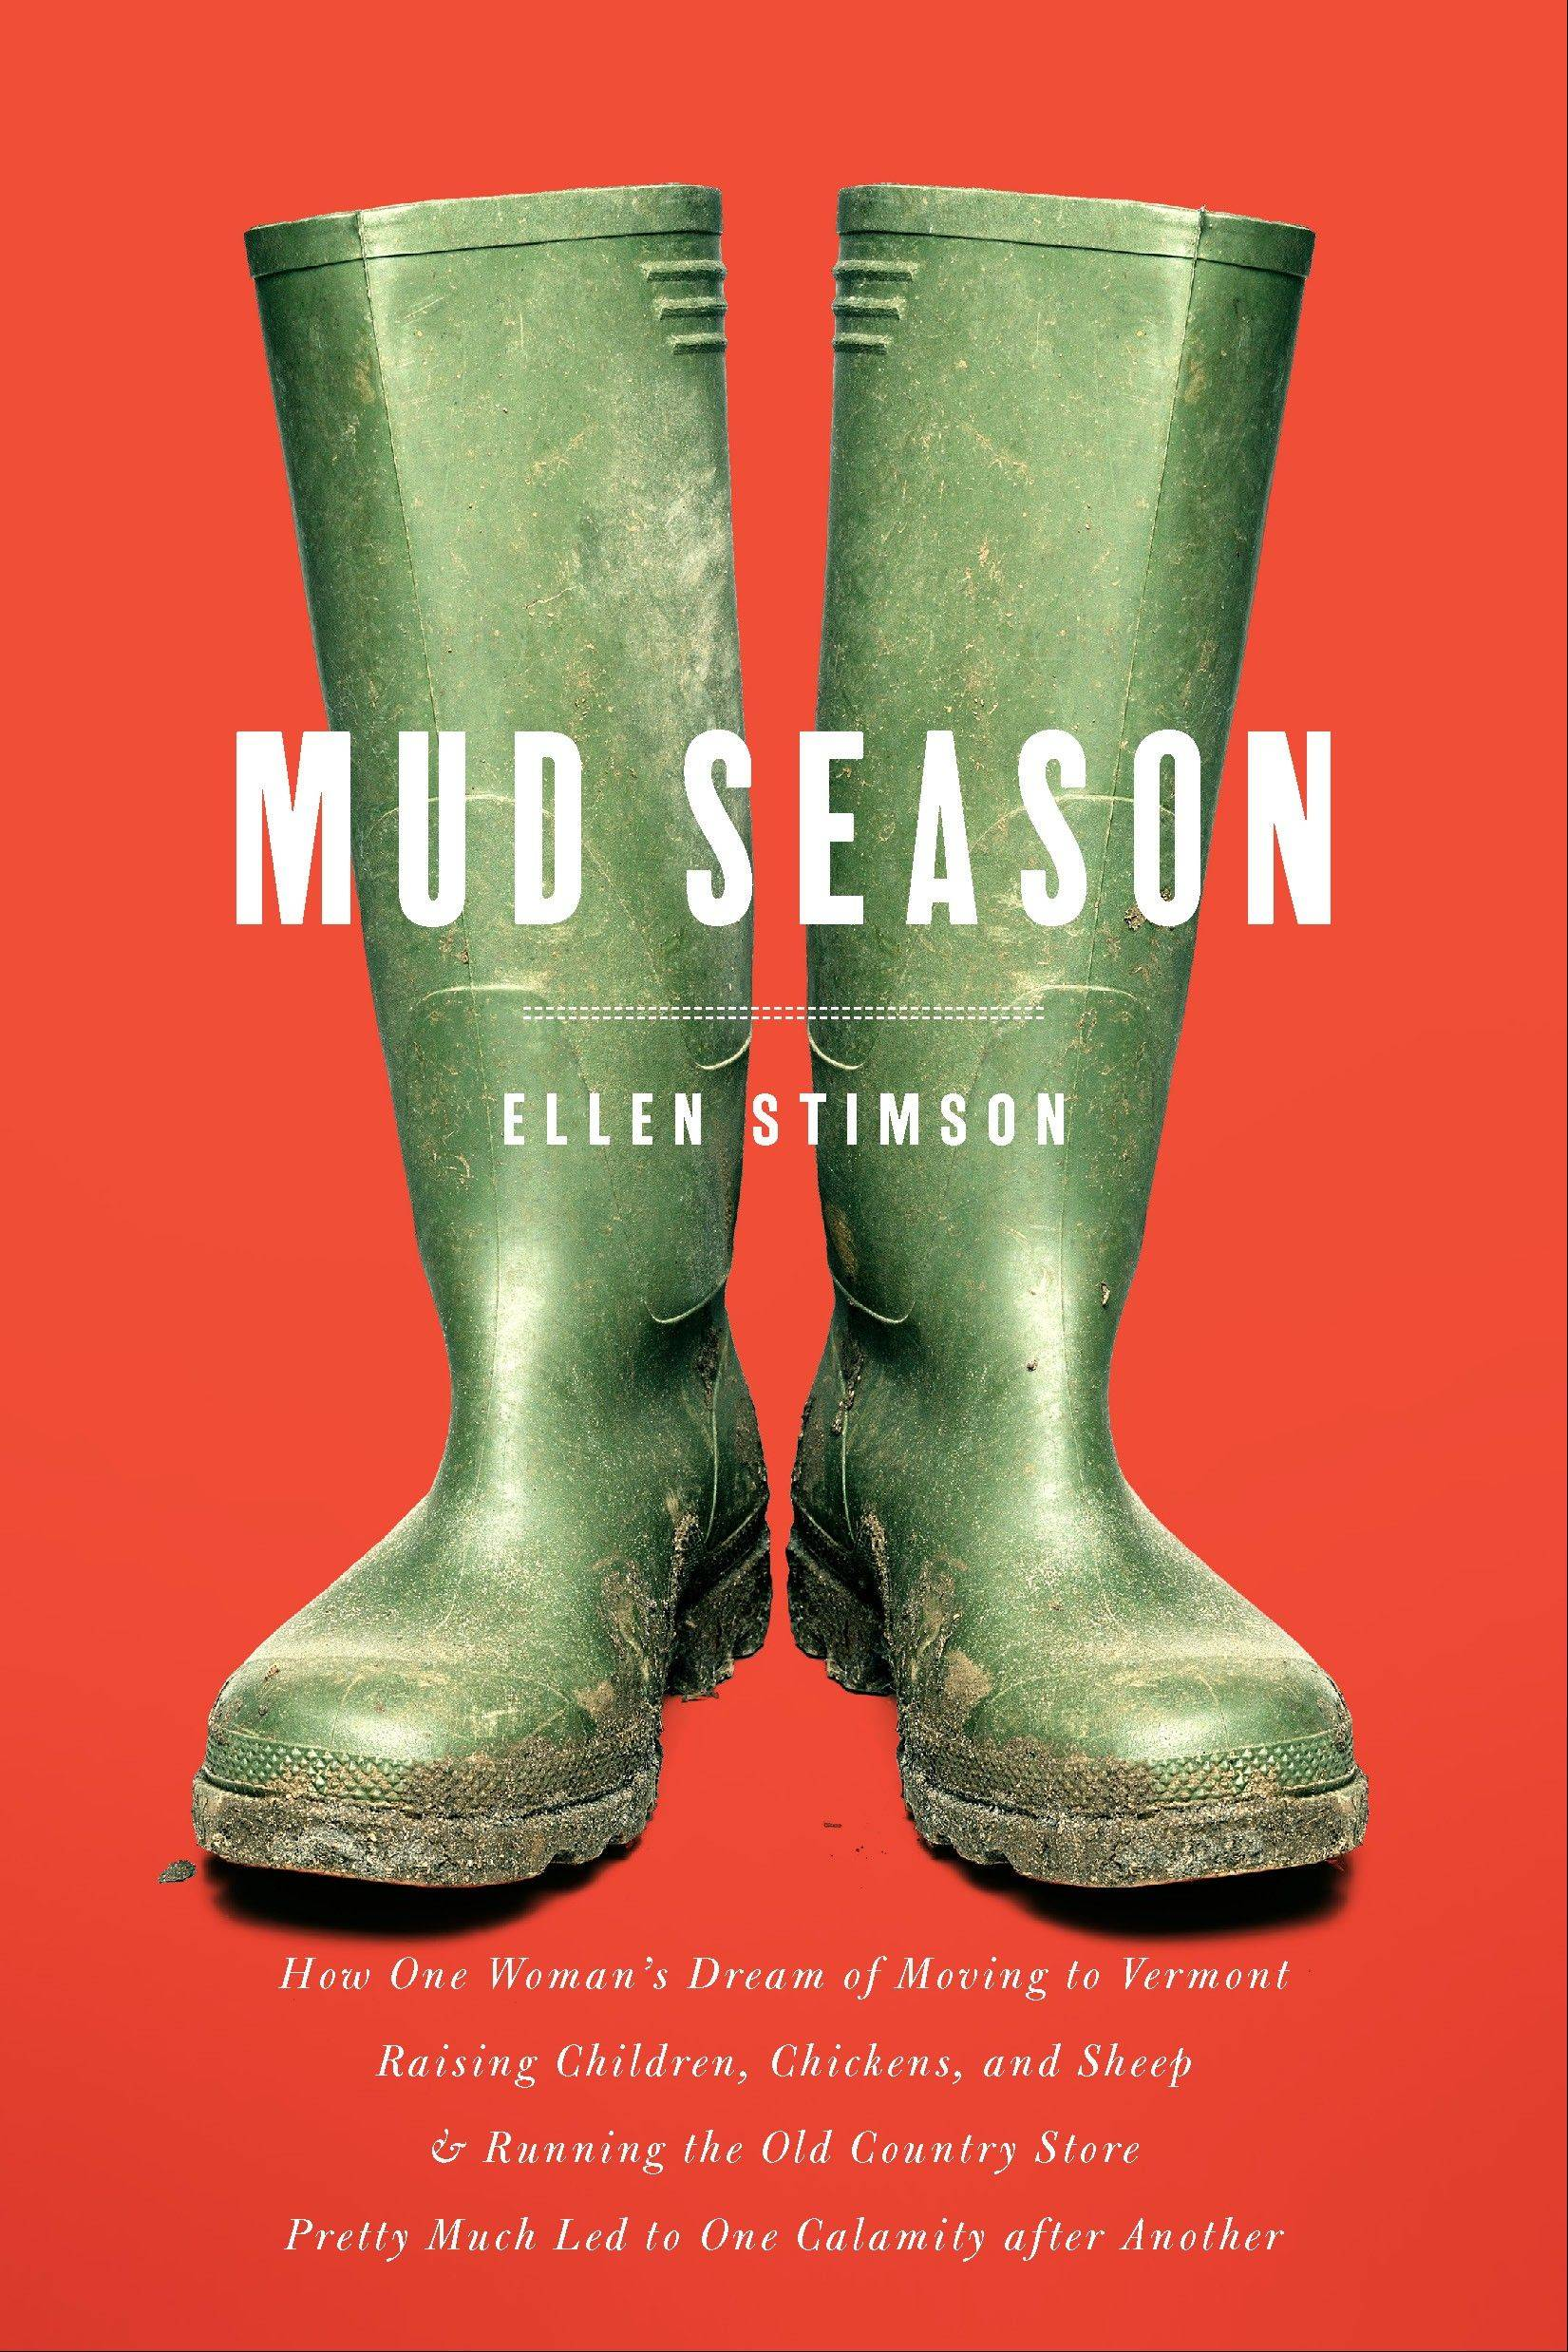 """Mud Season: How One Woman's Dream of Moving to Vermont, Raising Children, Chickens and Sheep, & Running the Old Country Store Pretty Much Led to One Calamity after Another"" by Ellen Stimson"